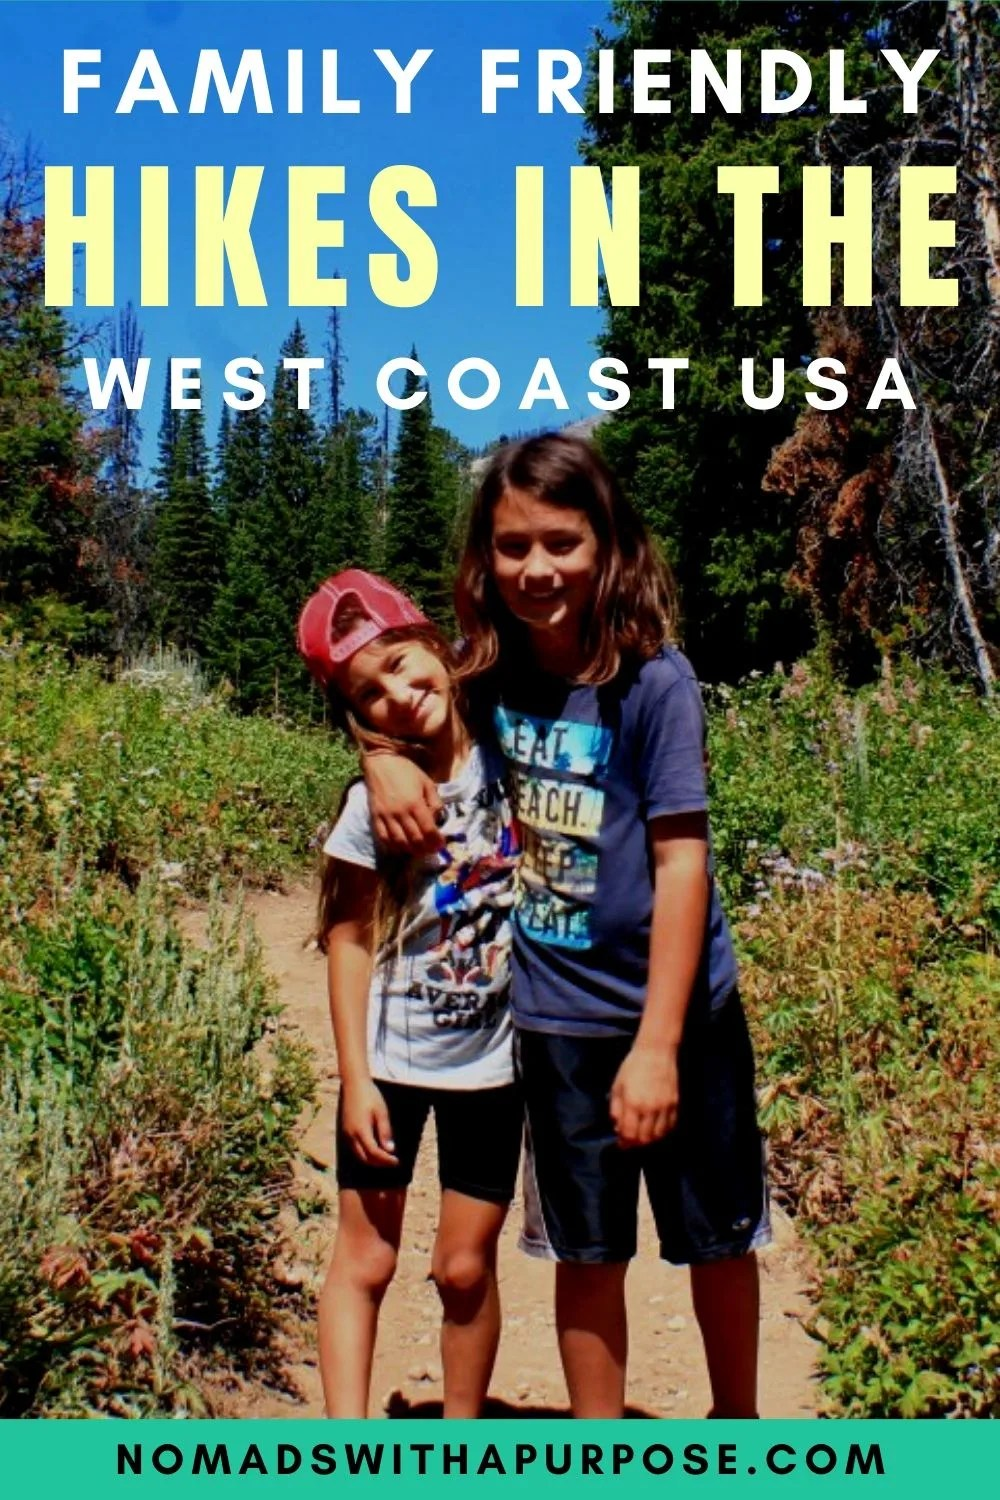 Family Friendly Hikes in the West Coast